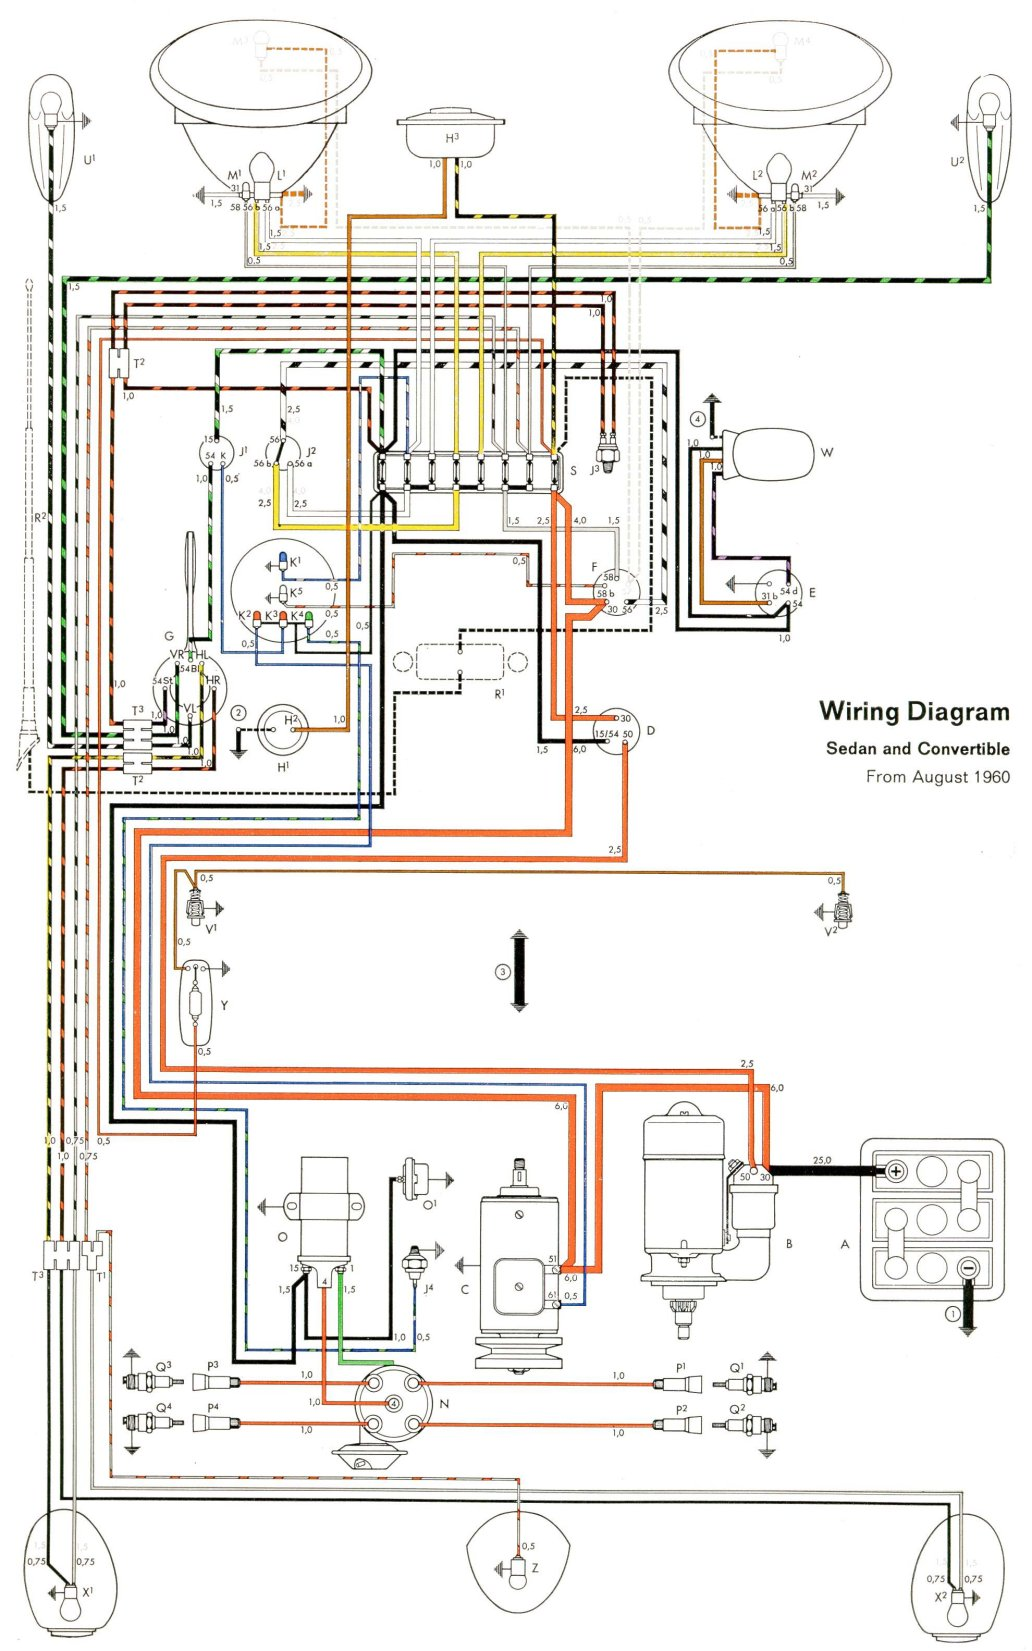 vw t25 wiring schematic vw image wiring diagram vw wiring diagrams vw wiring diagrams on vw t25 wiring schematic